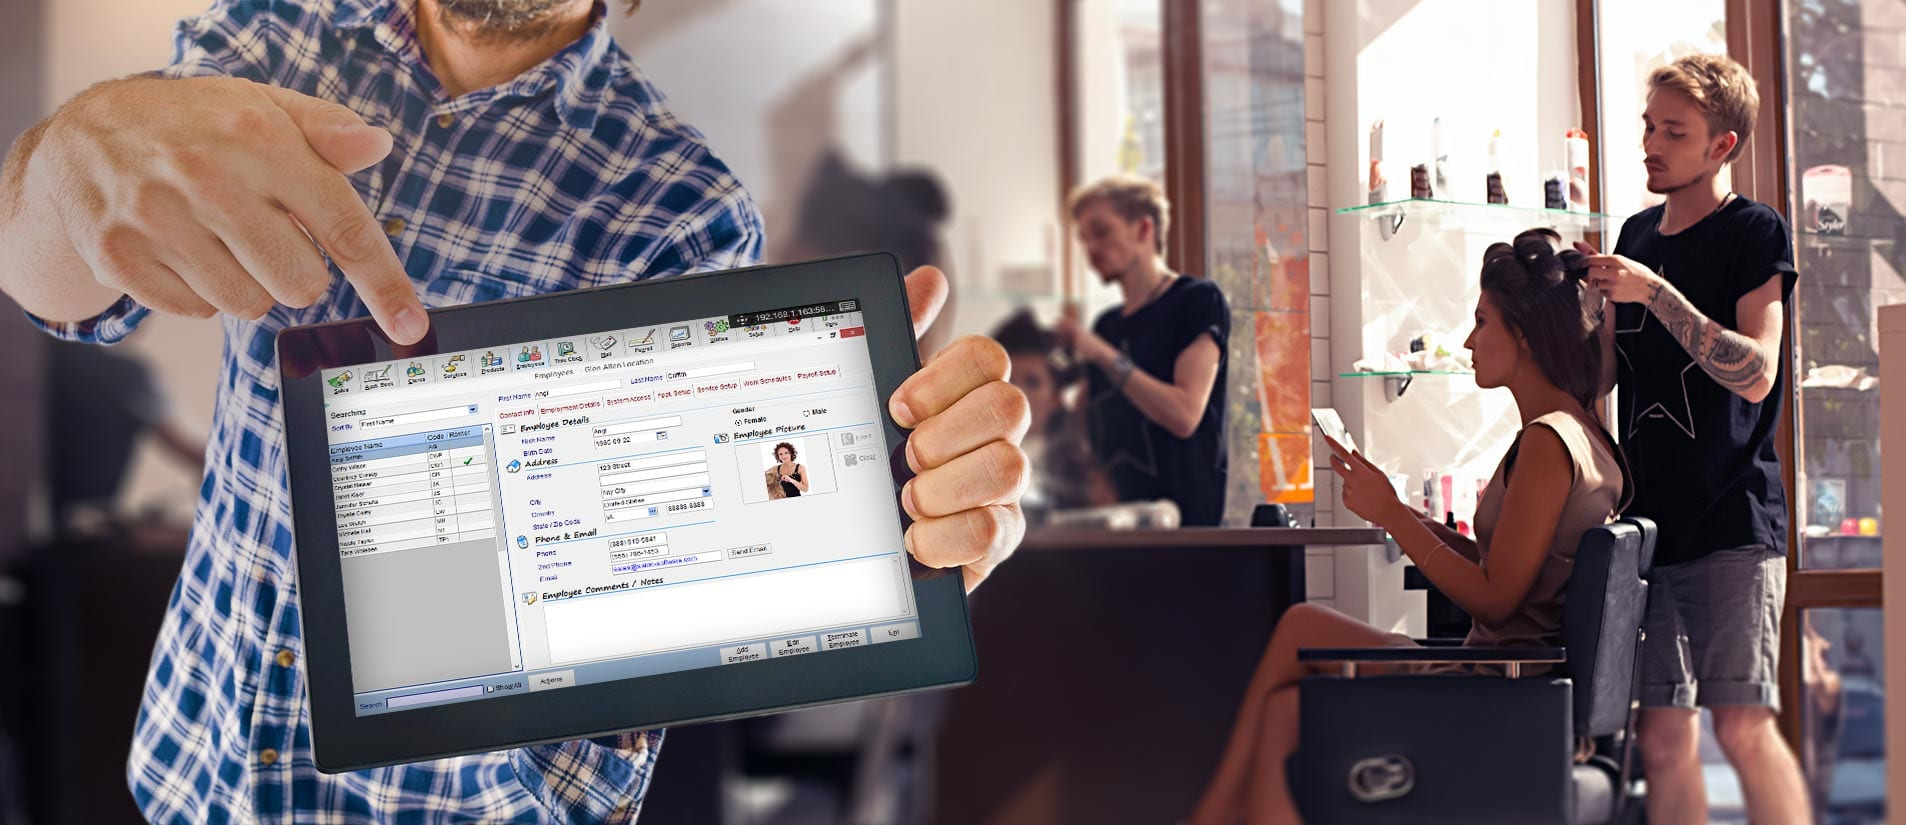 beauty salon tablet with employee management screen